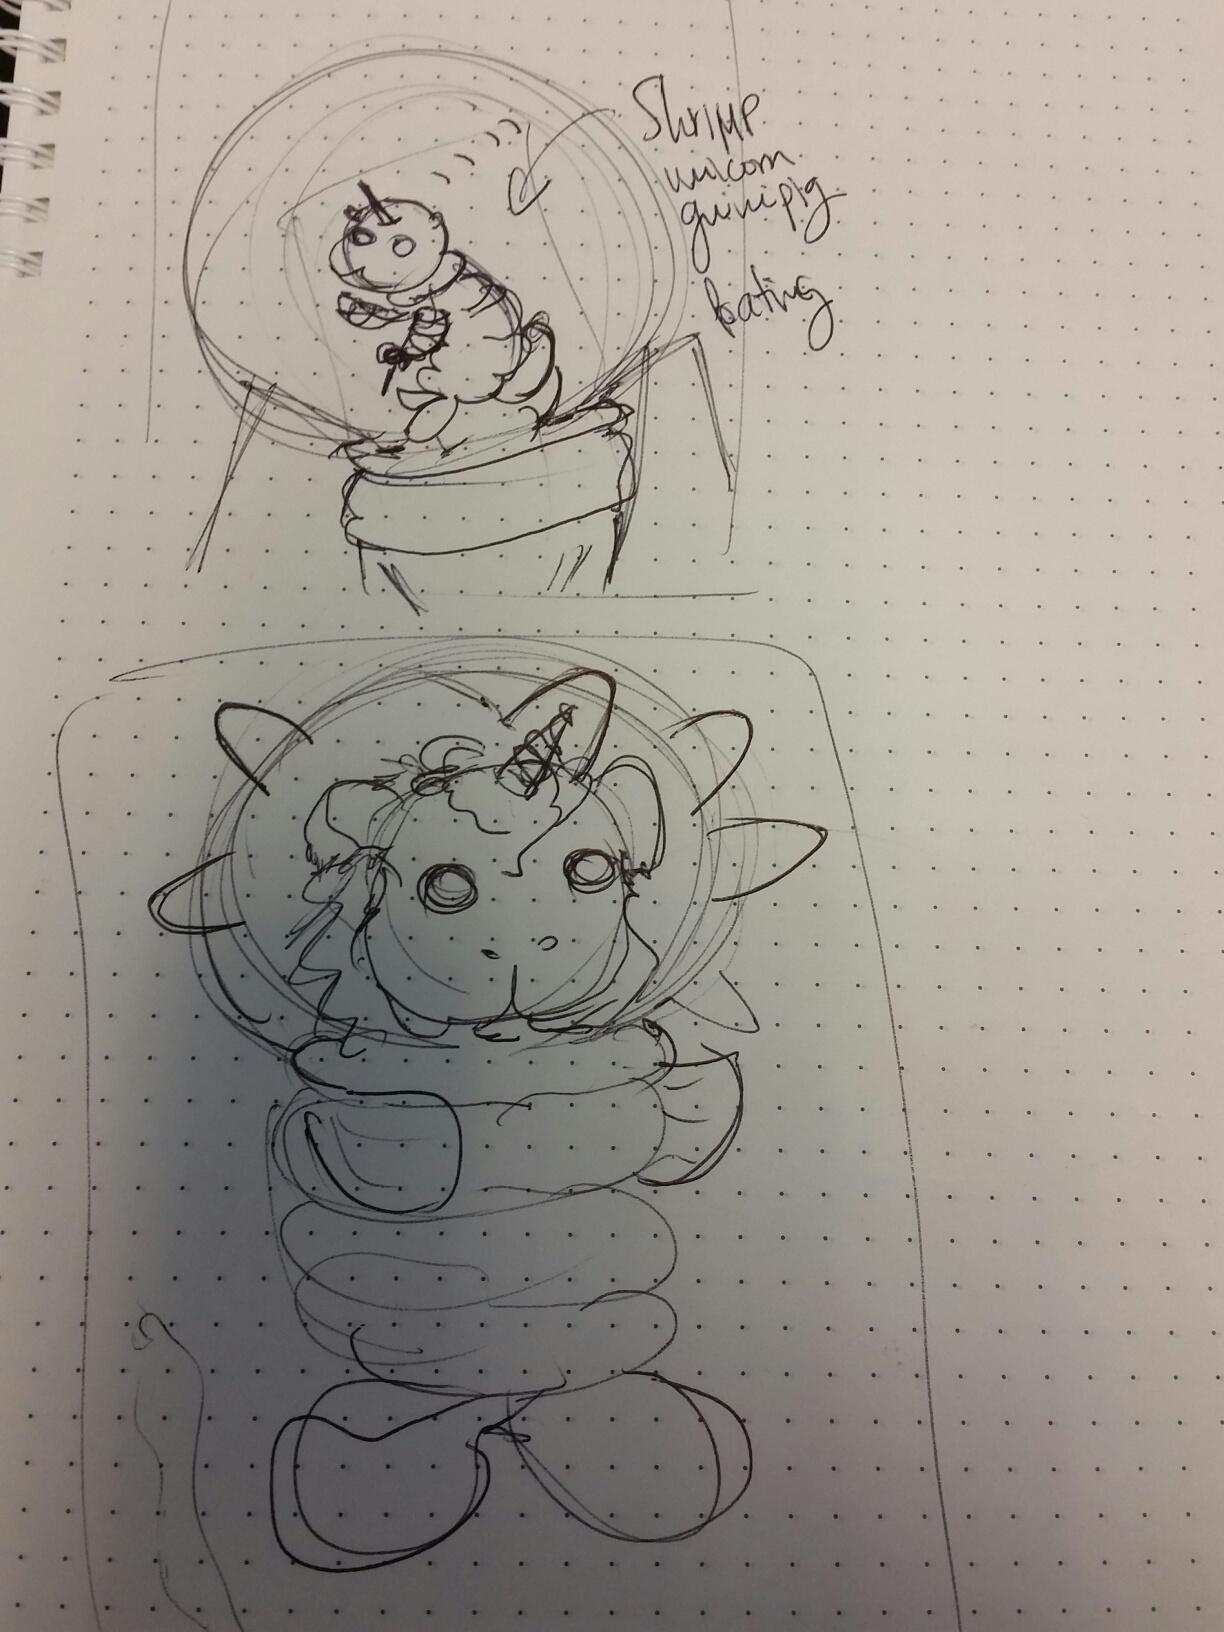 Guinipig with unicorn horn in shrimp space suit - image 2 - student project